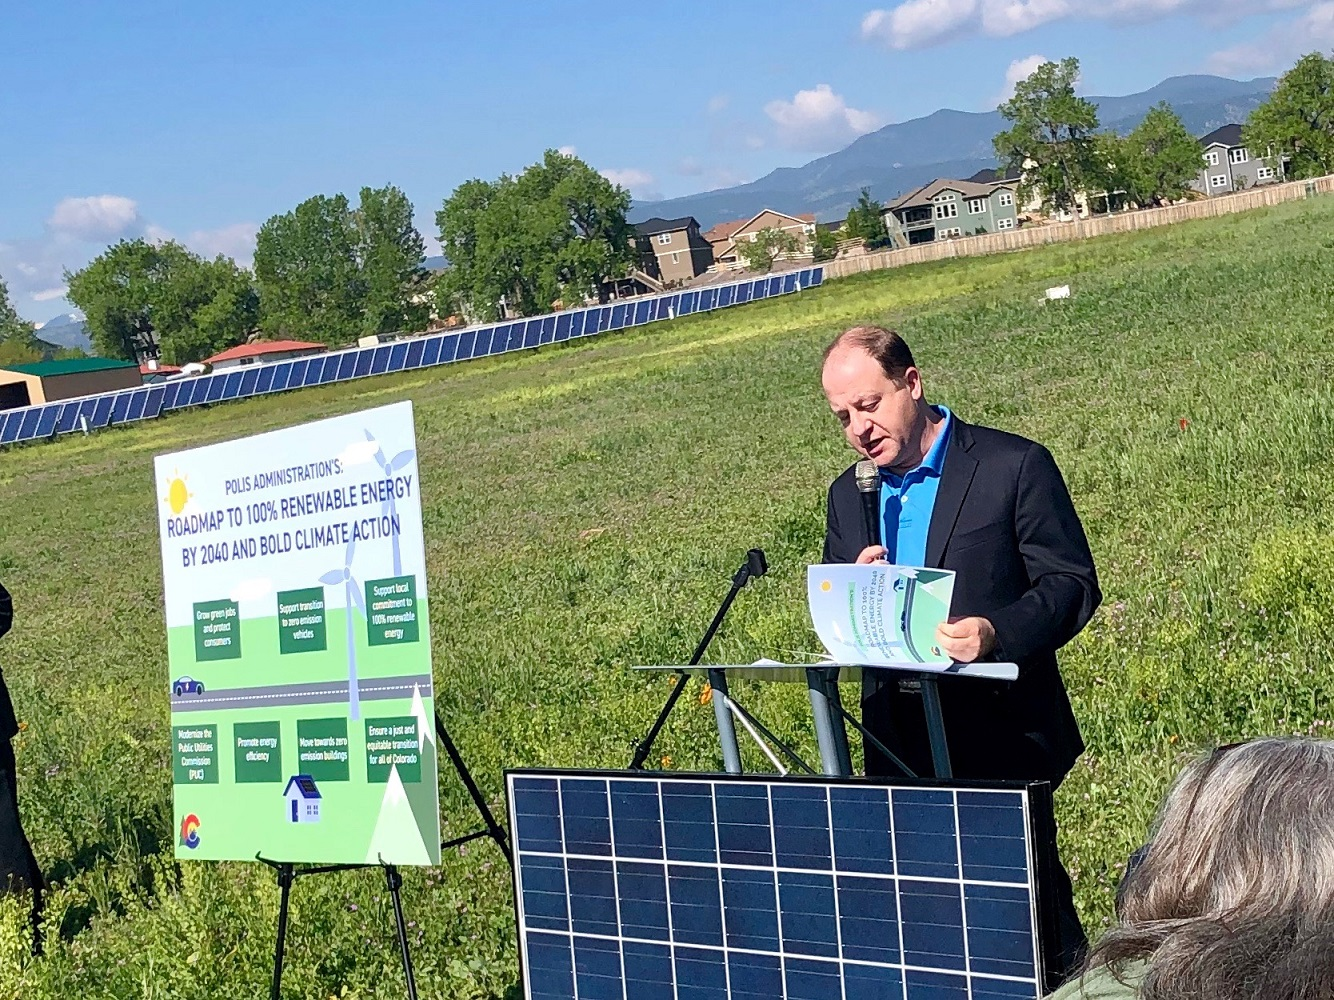 Man speaking about solar panels